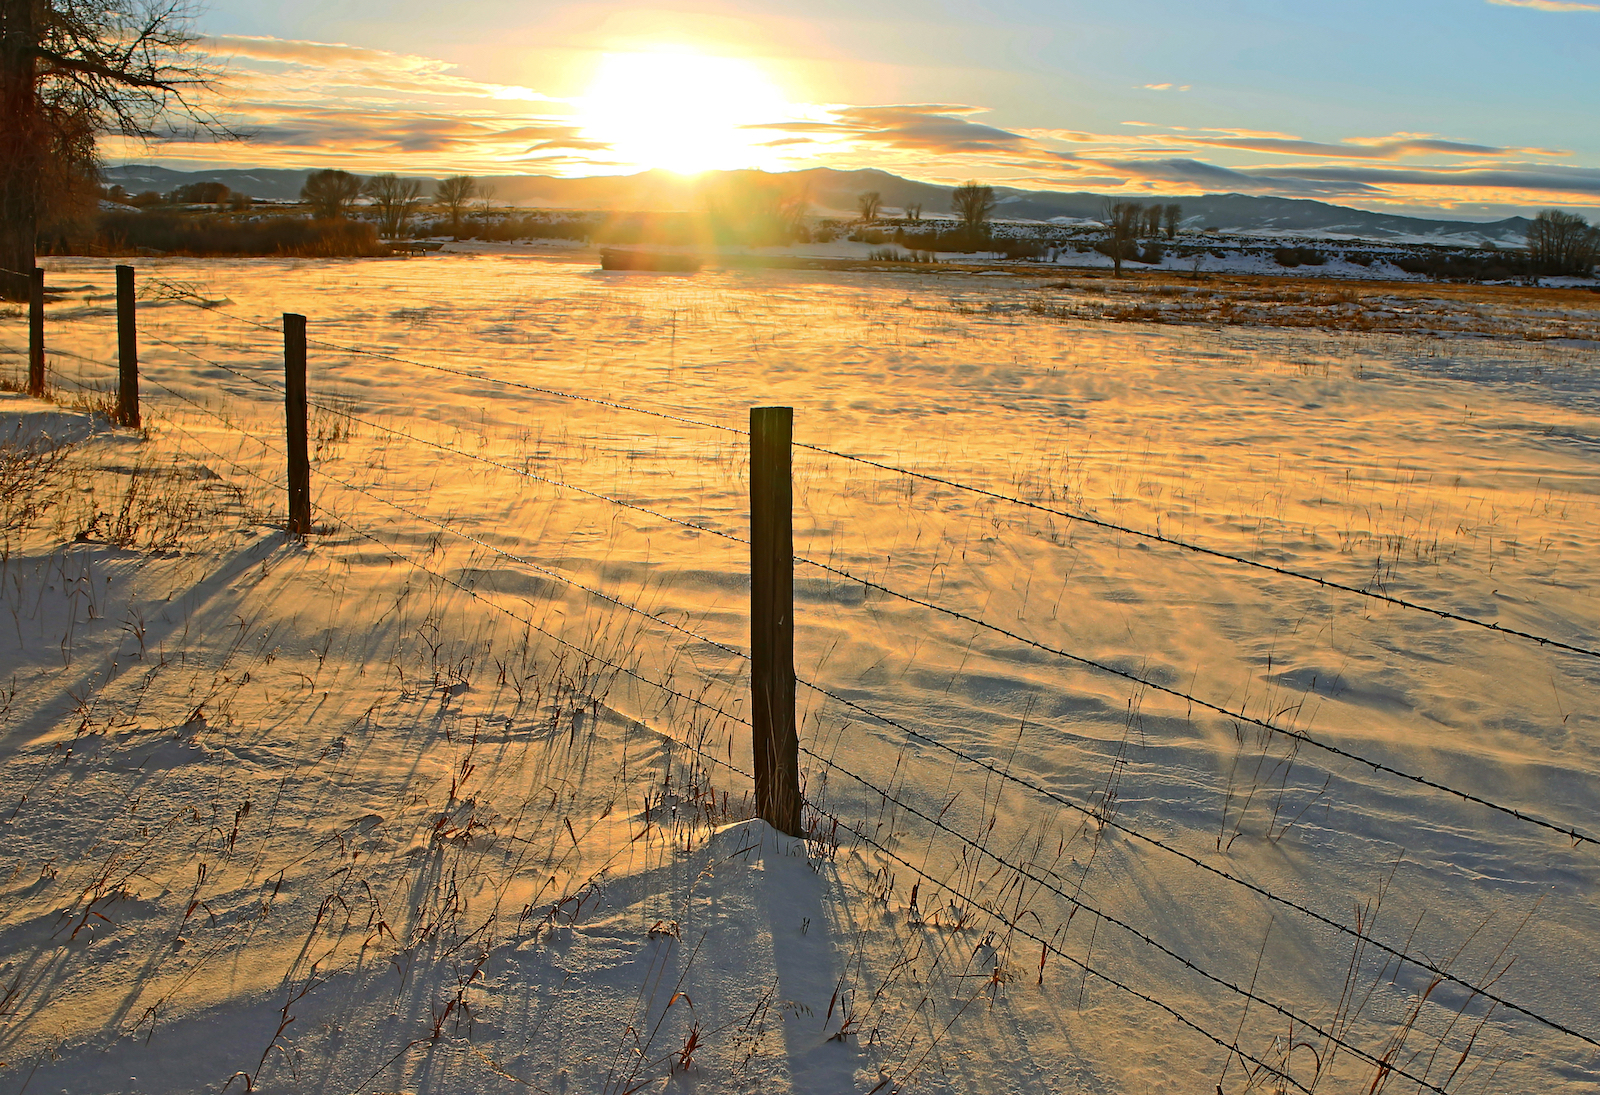 snow and a barbed wire fence at sunset during winter in Carbon County, Wyoming